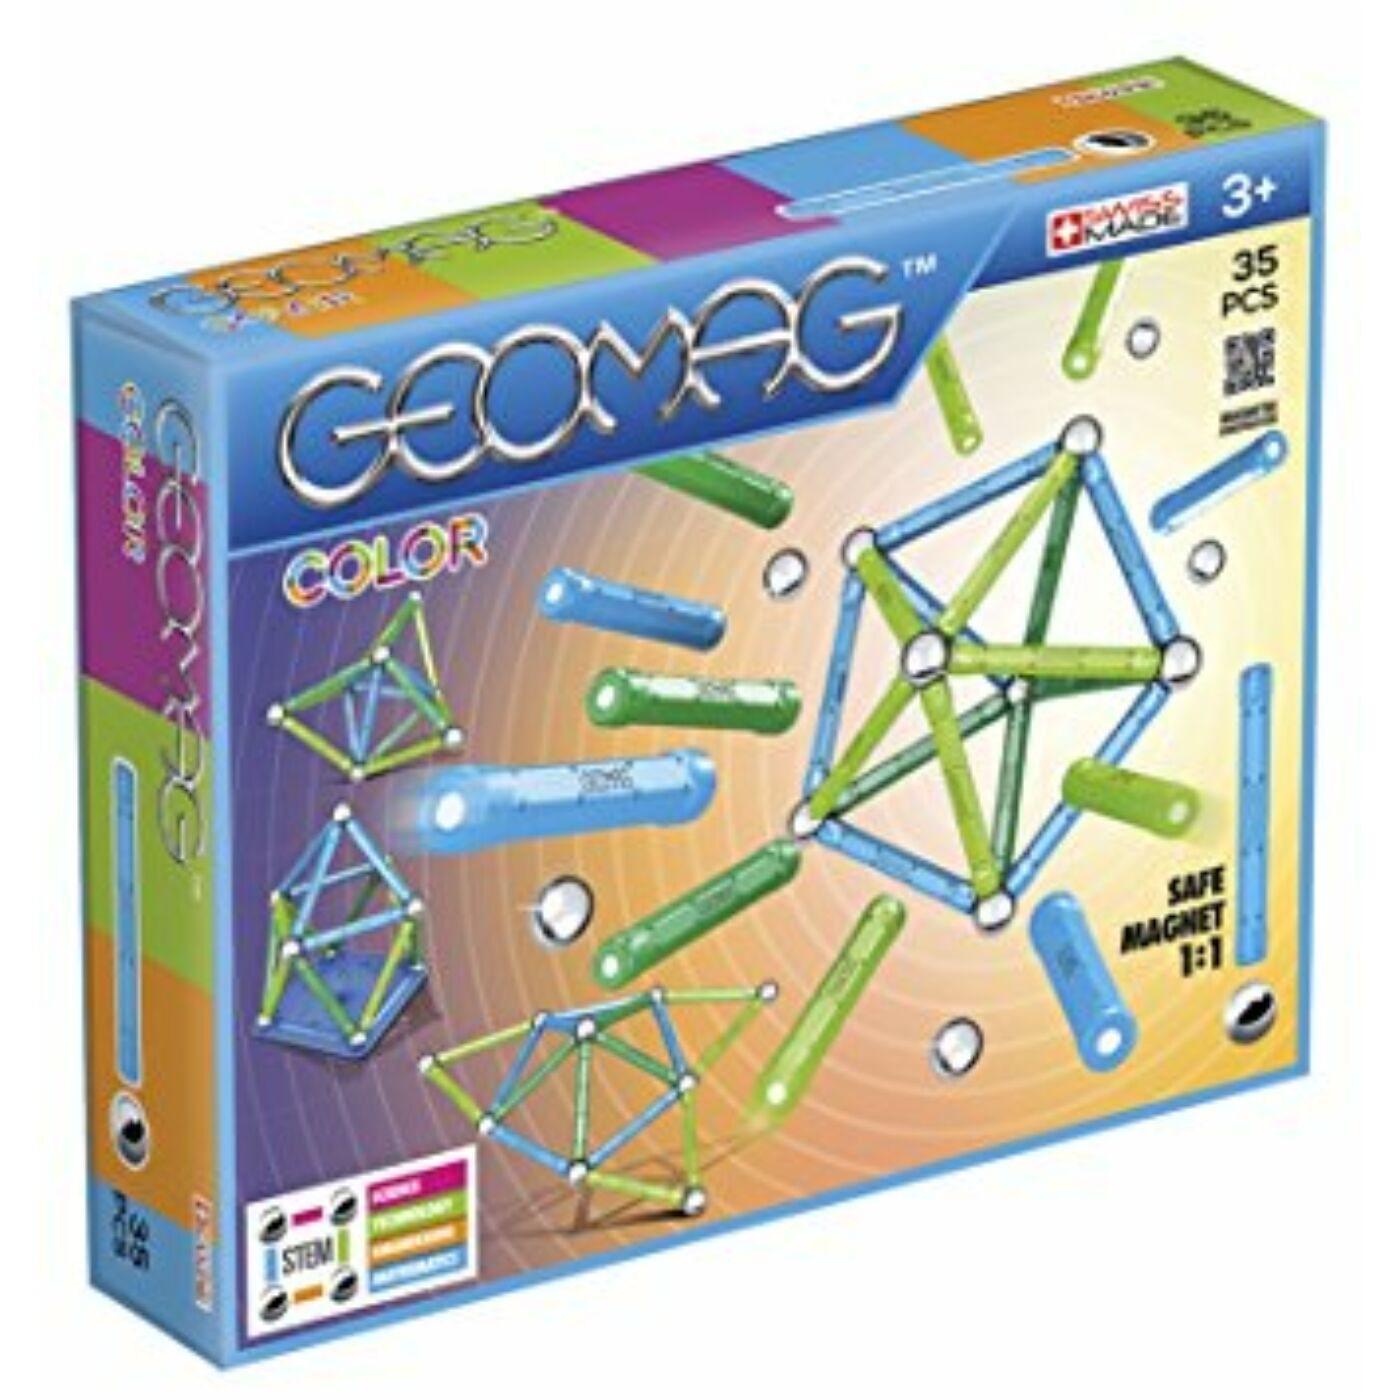 Geomag color 35 db-os